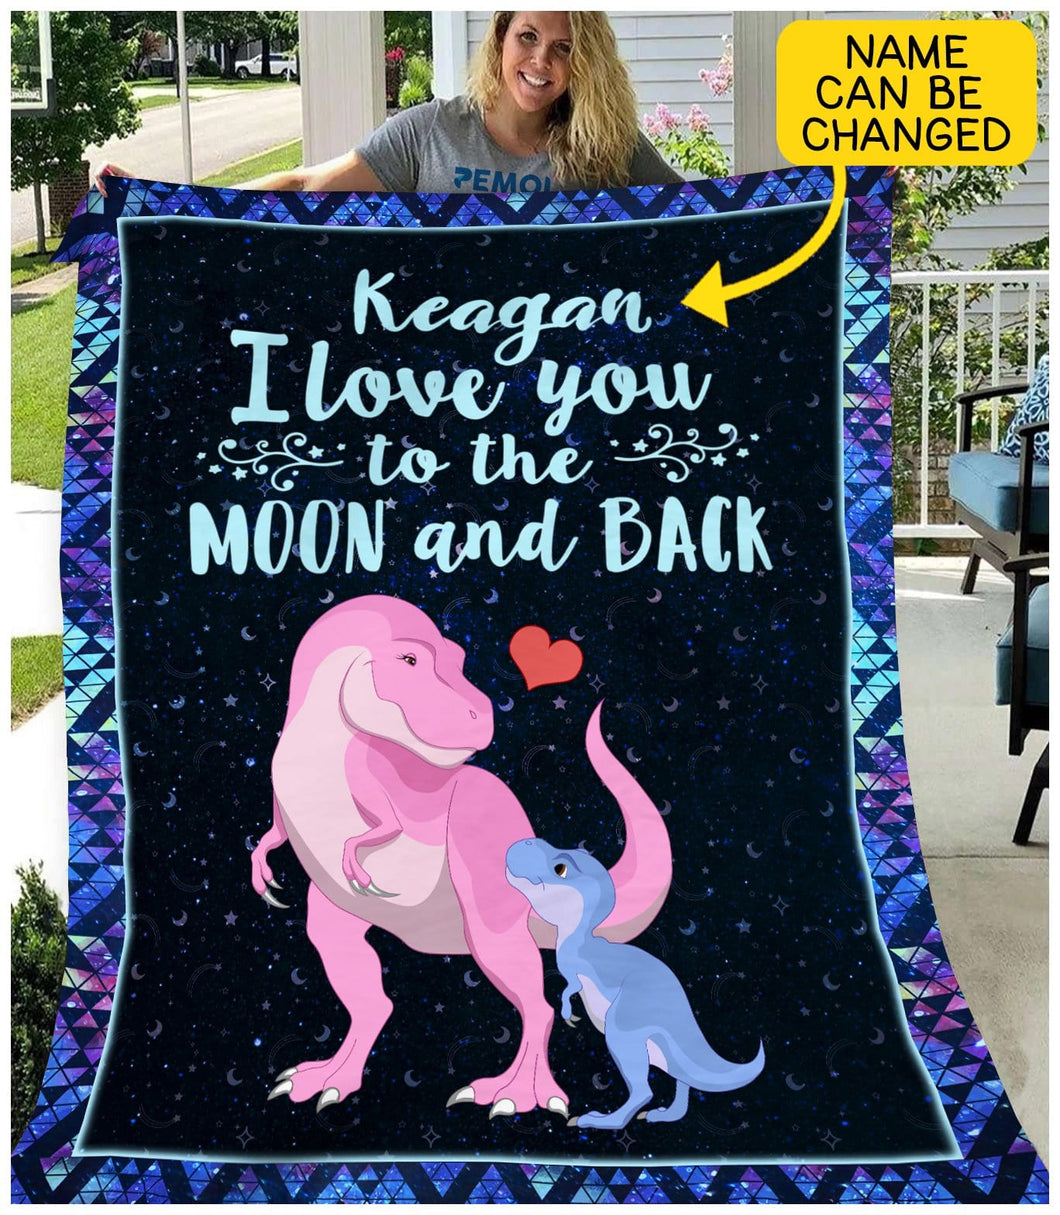 Pemola, personalised baby gifts, custom name, unique birthday gifts, dinosaurs for kids, personalized fleece blankets